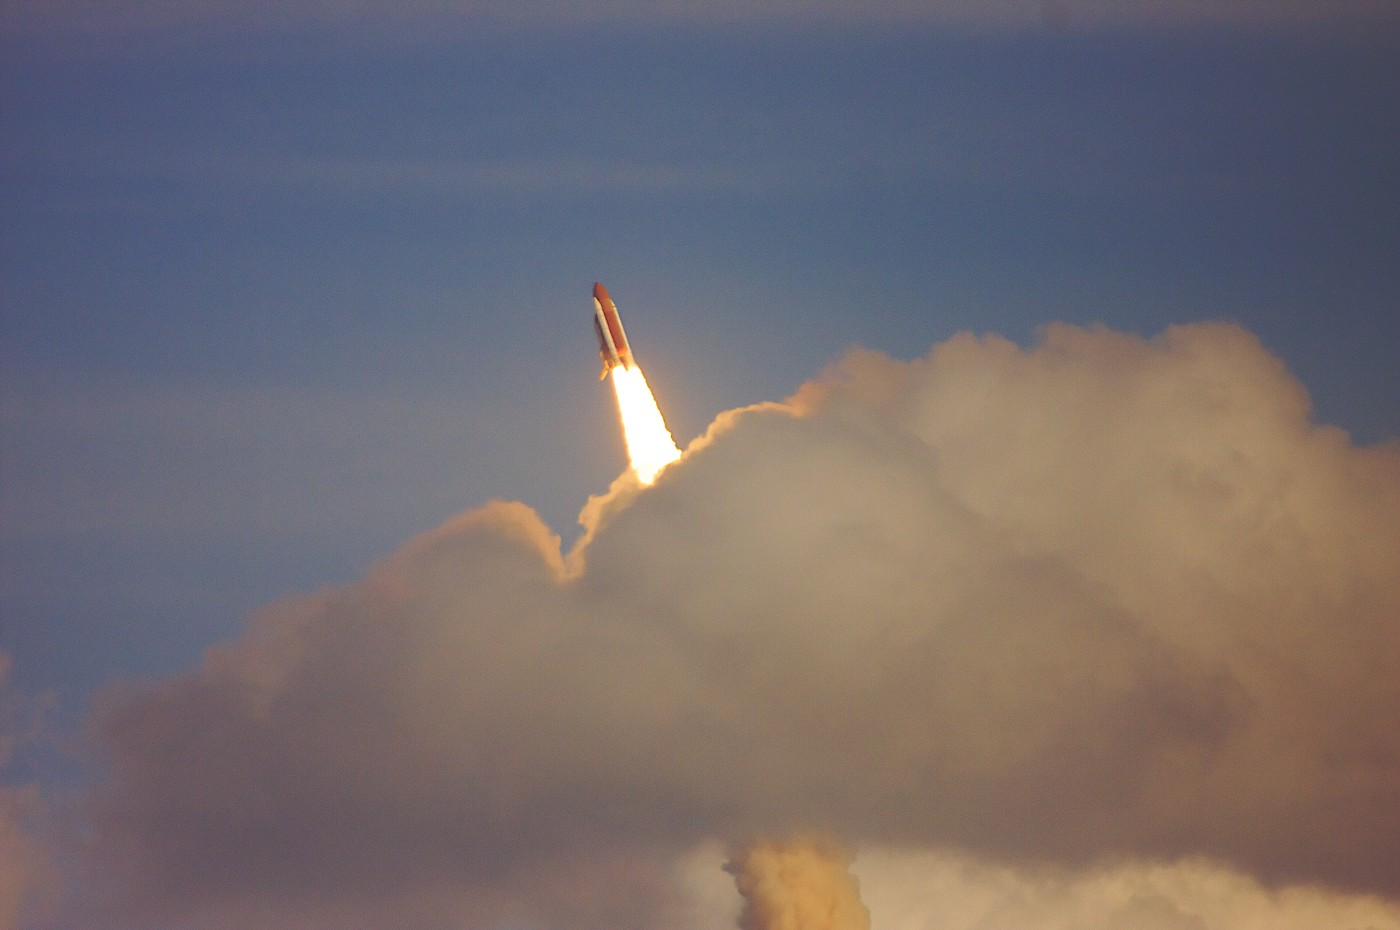 rocket shooting through clouds